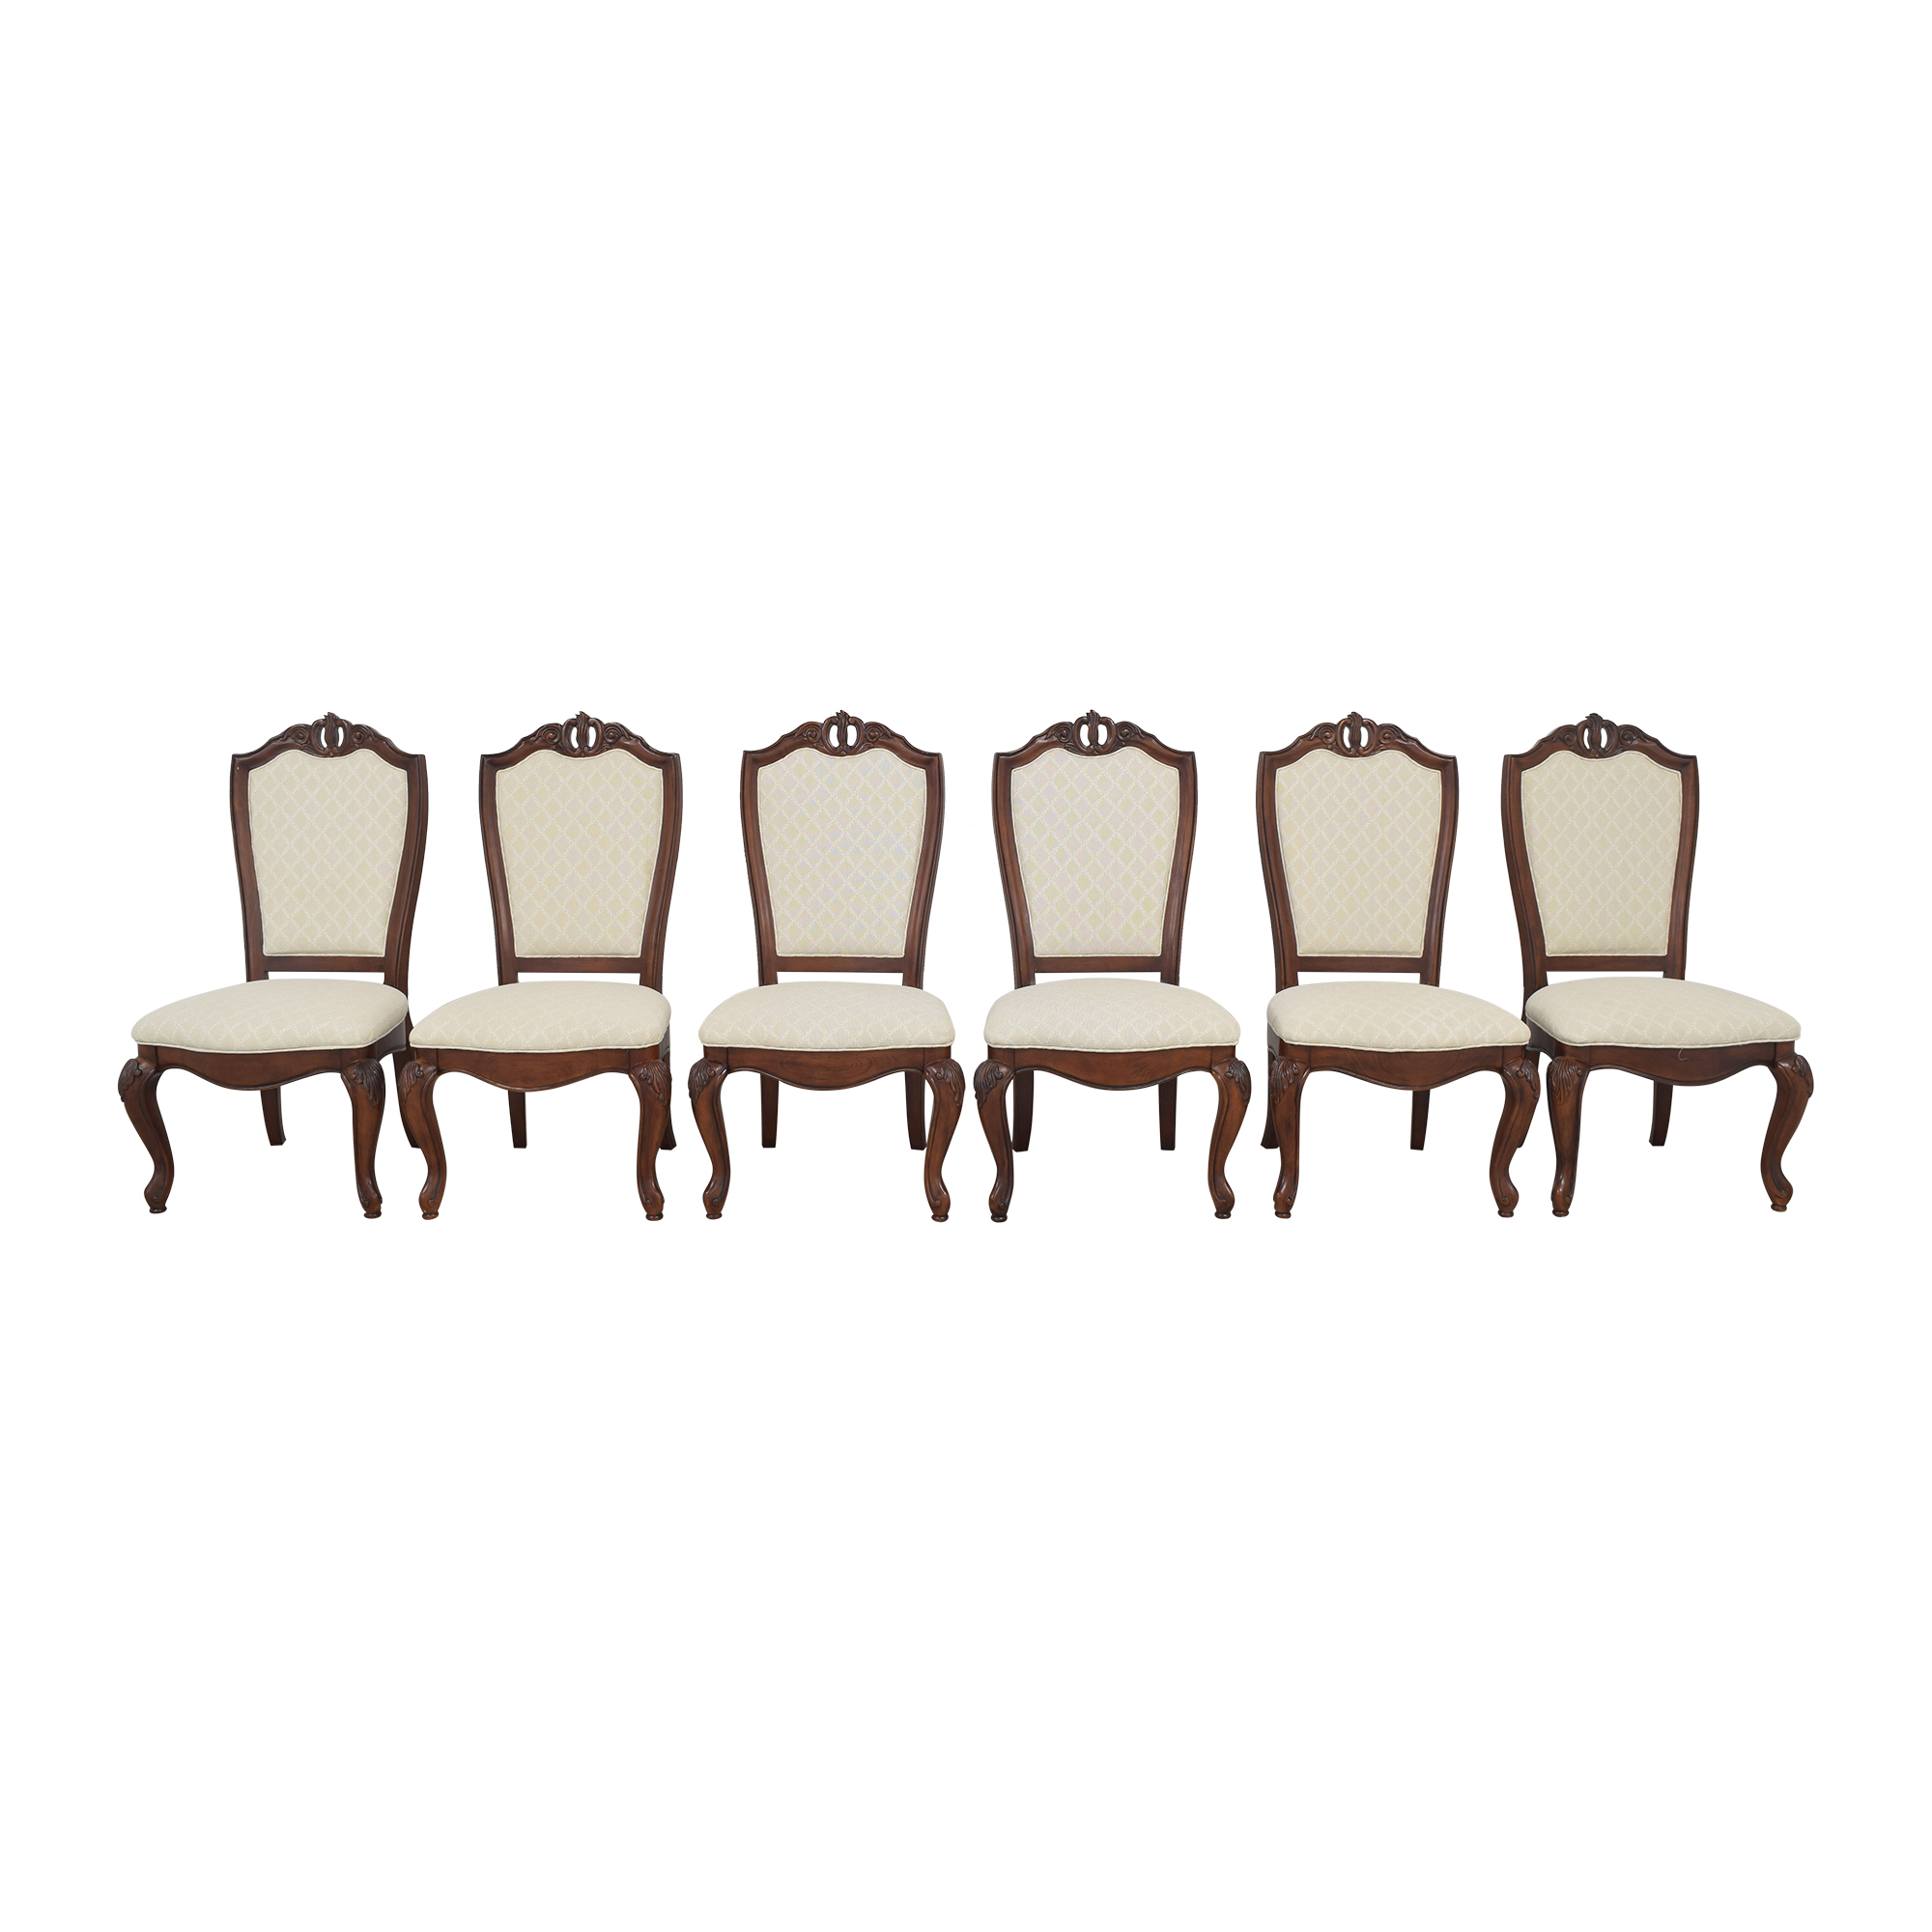 American Drew American Drew Upholstered Dining Chairs nj